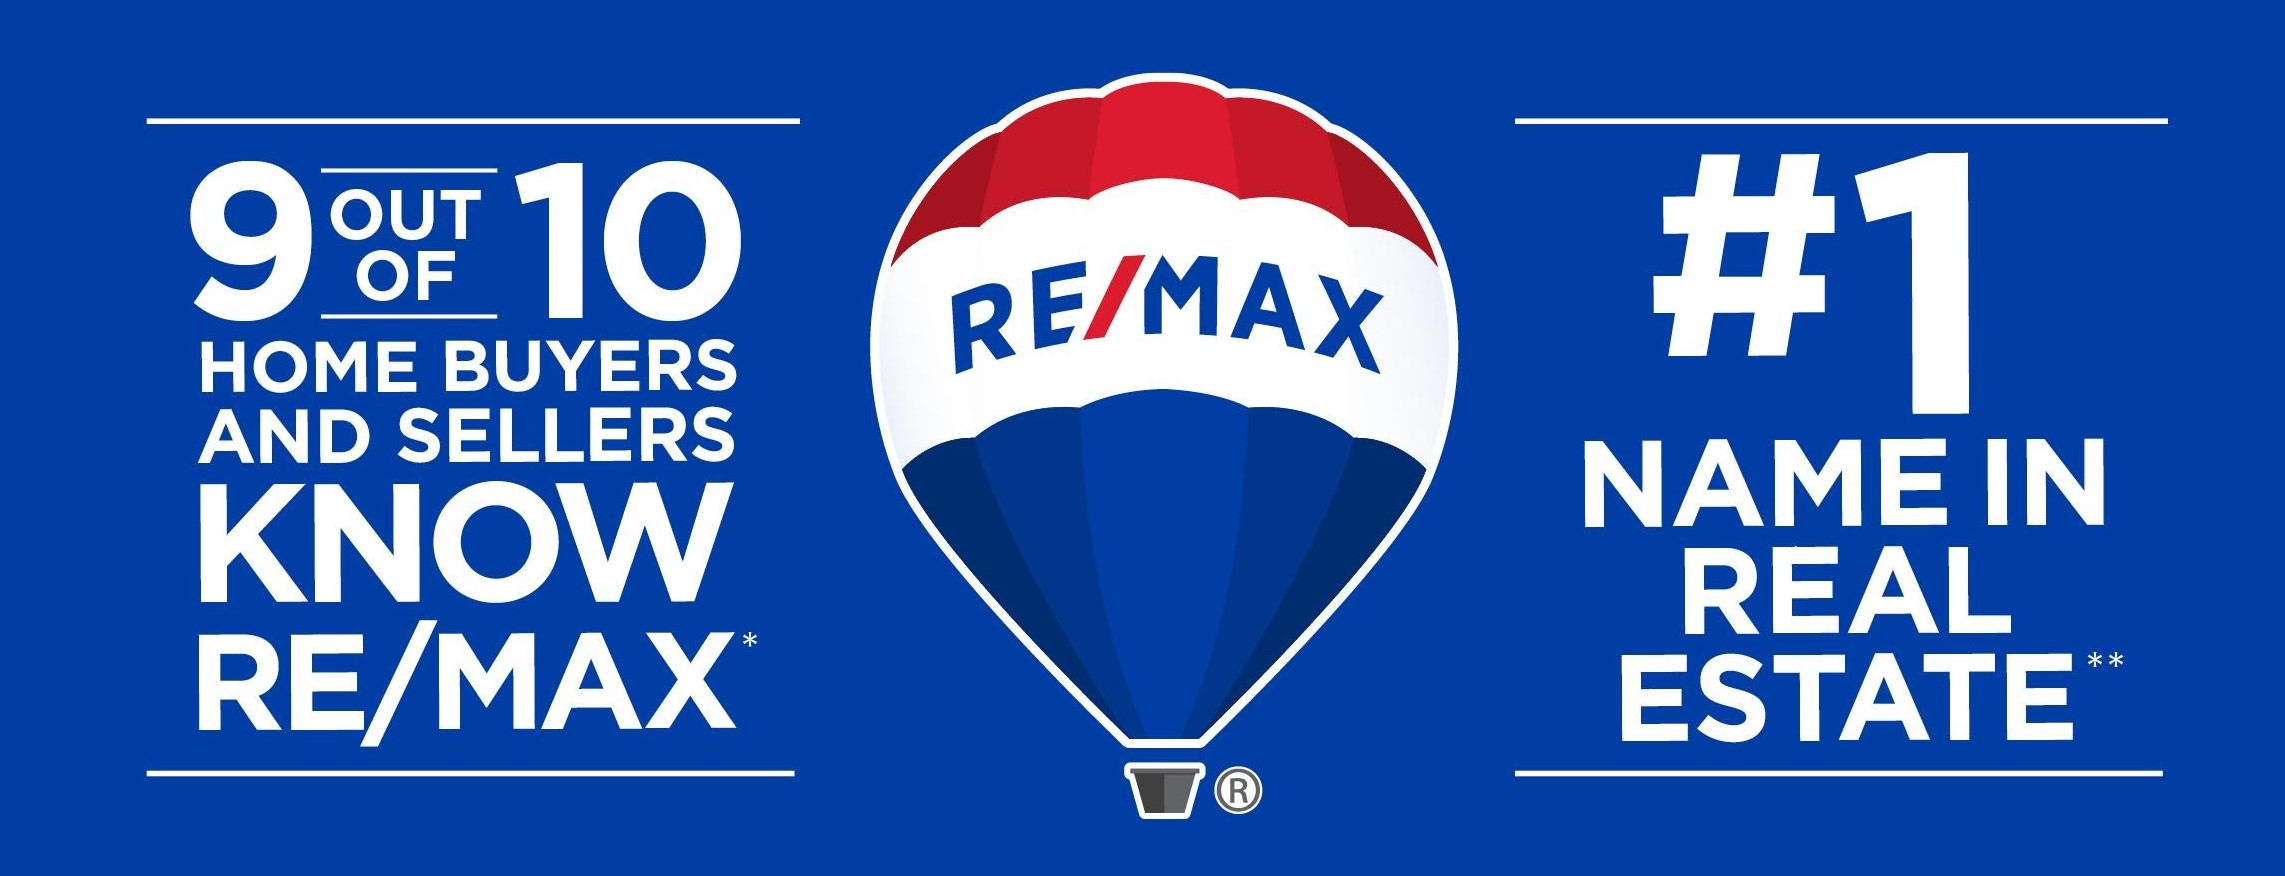 REMAX New Dimension reviews | 1820 E First St - Santa Ana CA